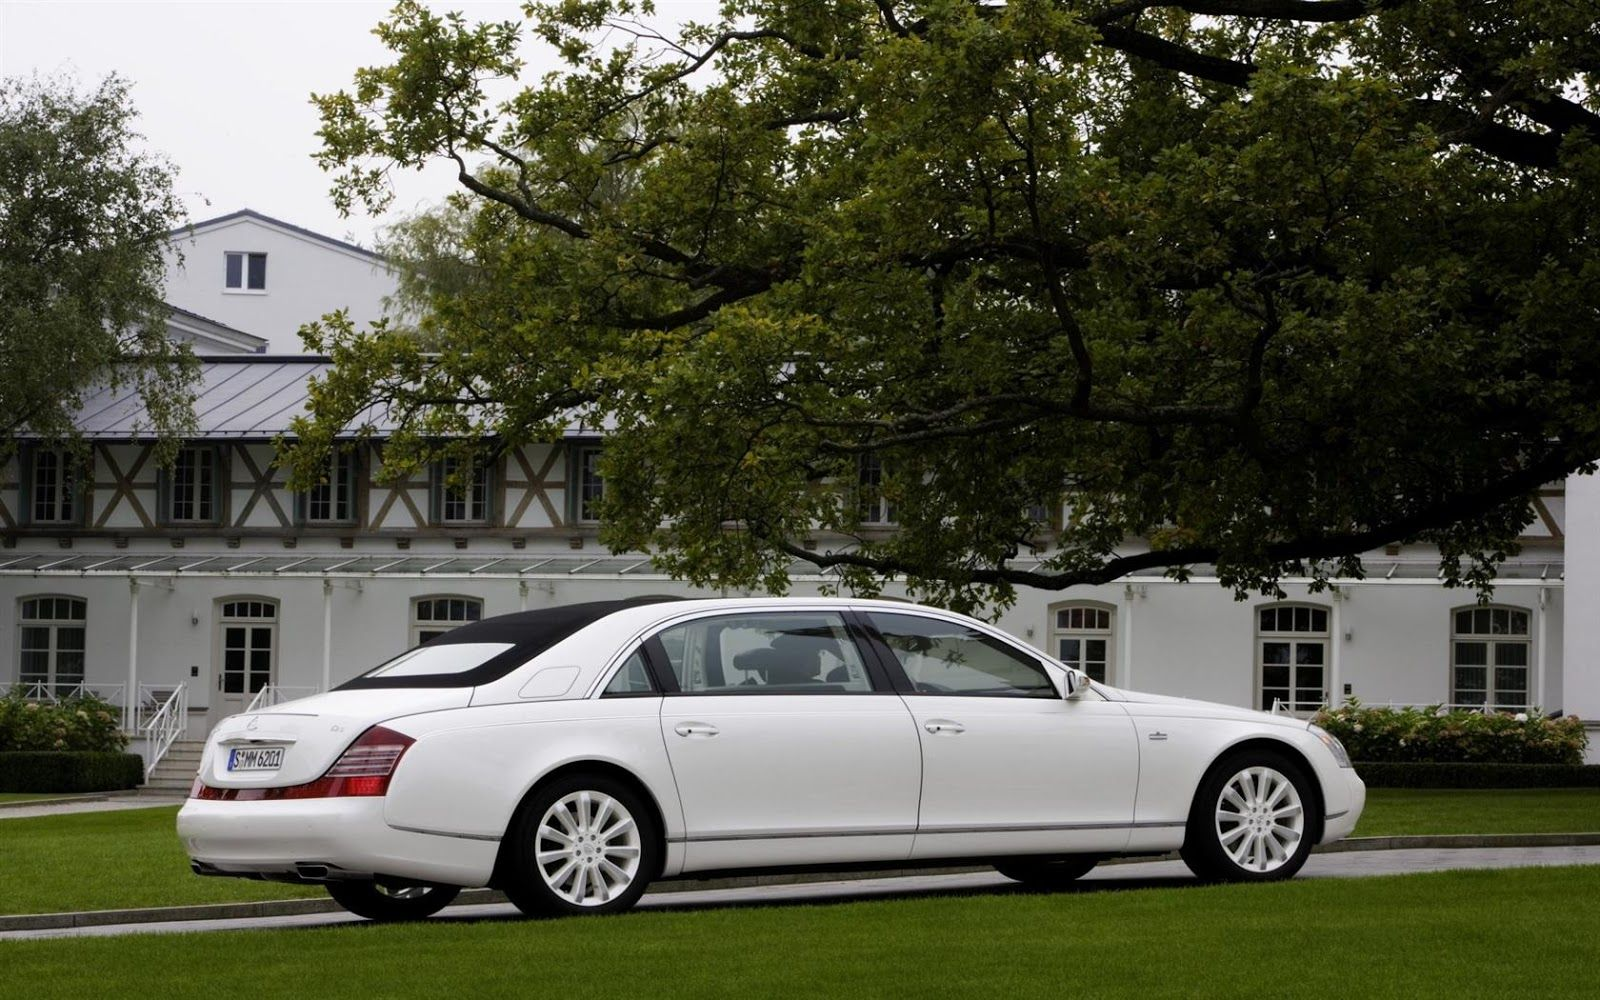 Passion For Luxury Top 10 Most Expensive Cars In The World 2013 Maybach Expensive Car Brands Mercedes Maybach